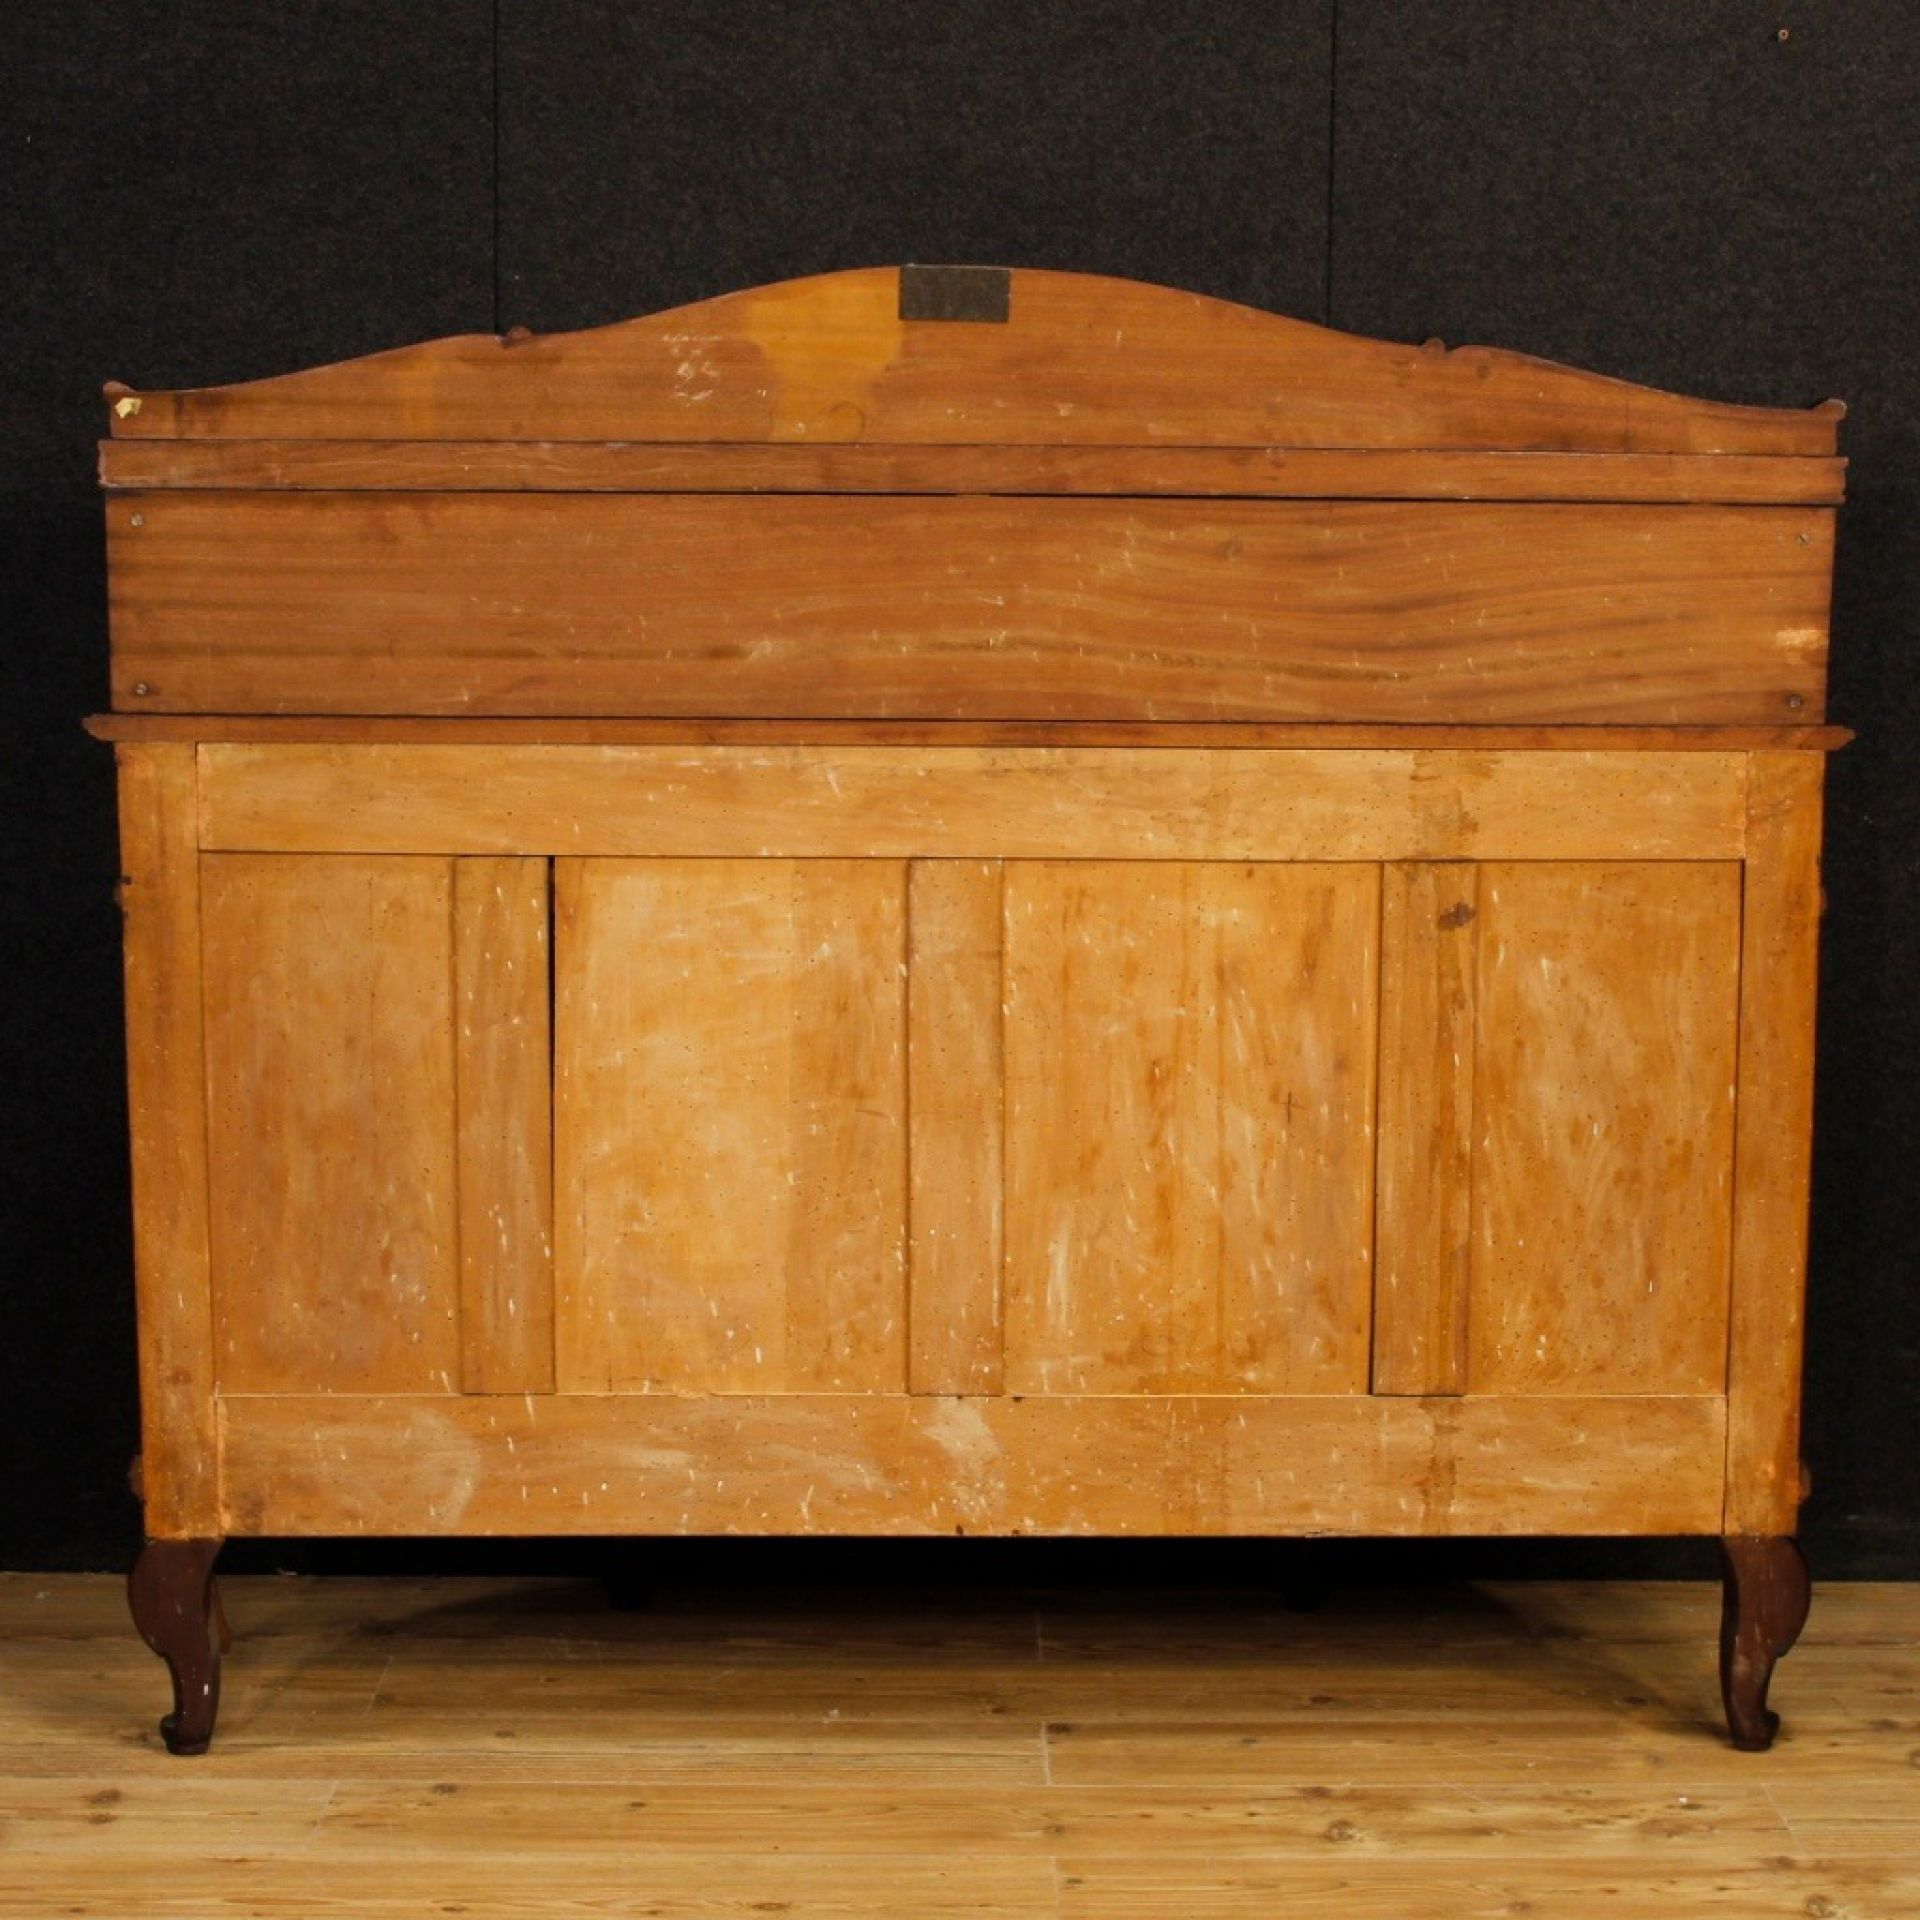 French Sideboard In Mahogany Wood With 4 Doors And 4 Drawers From 20th Century